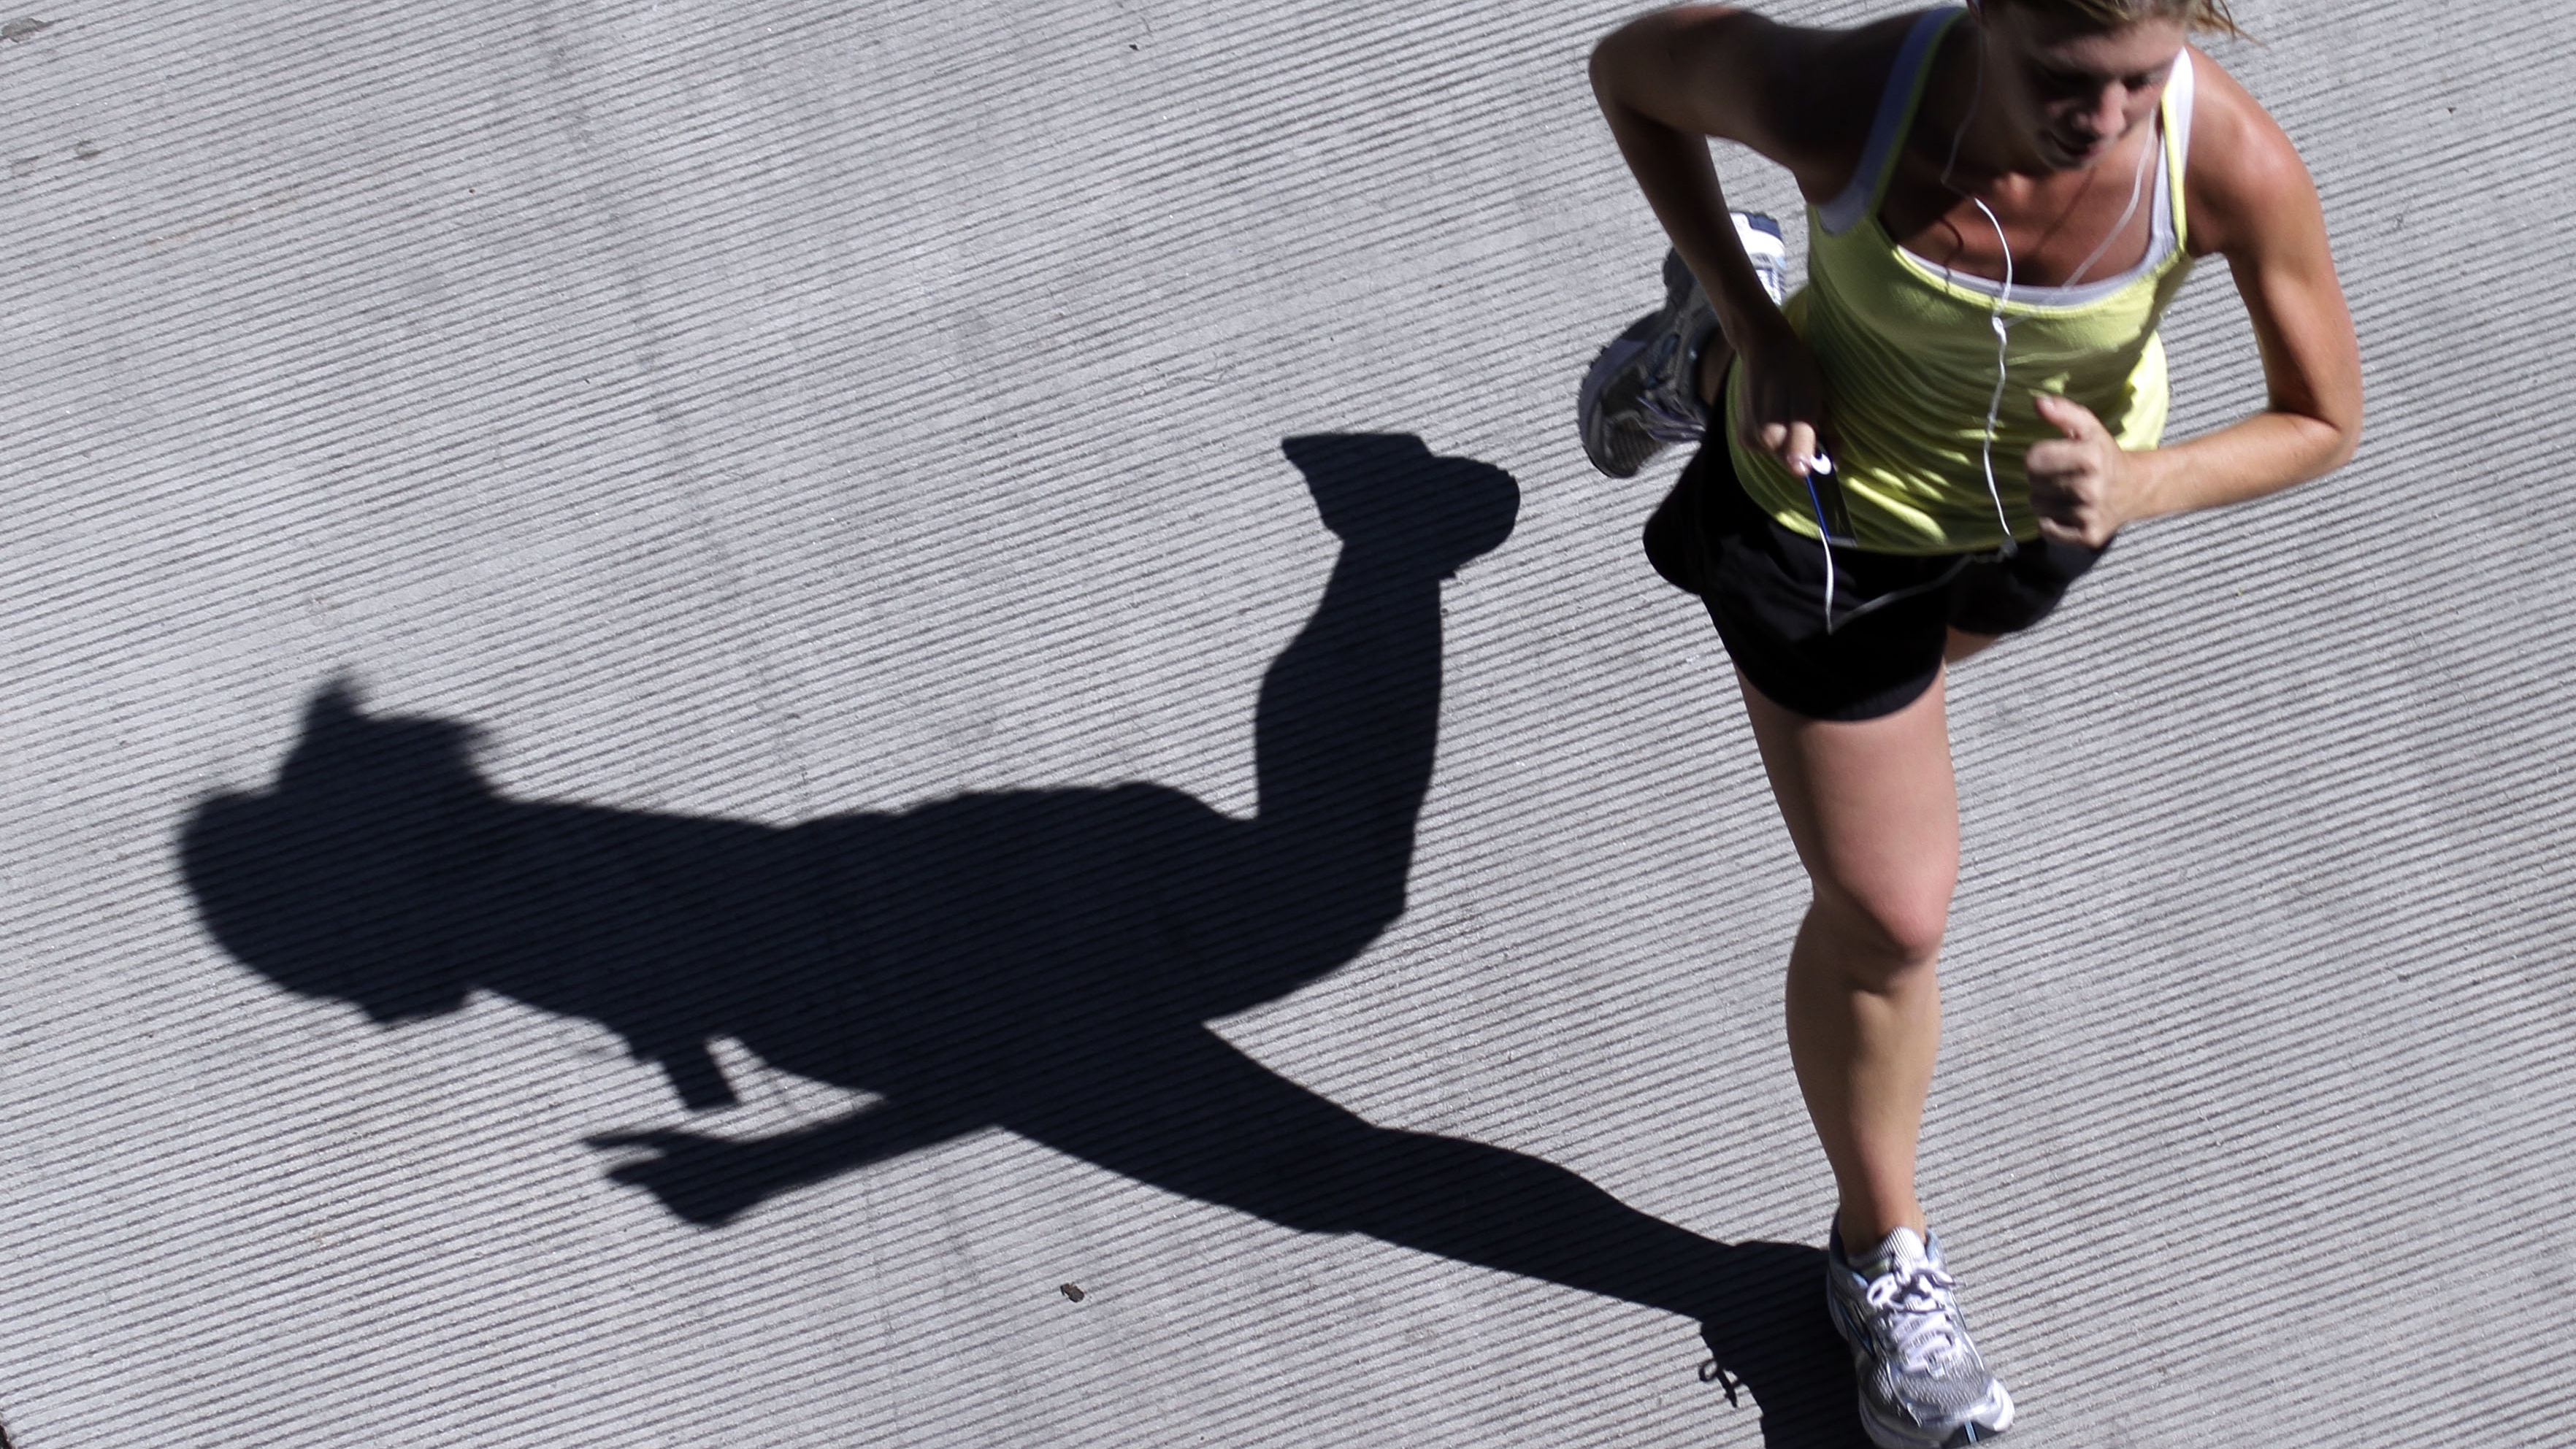 A lone jogger casts a long shadow while running at the Tom McCall Waterfront Park in Portland, Ore., Monday, Aug. 1, 2011.